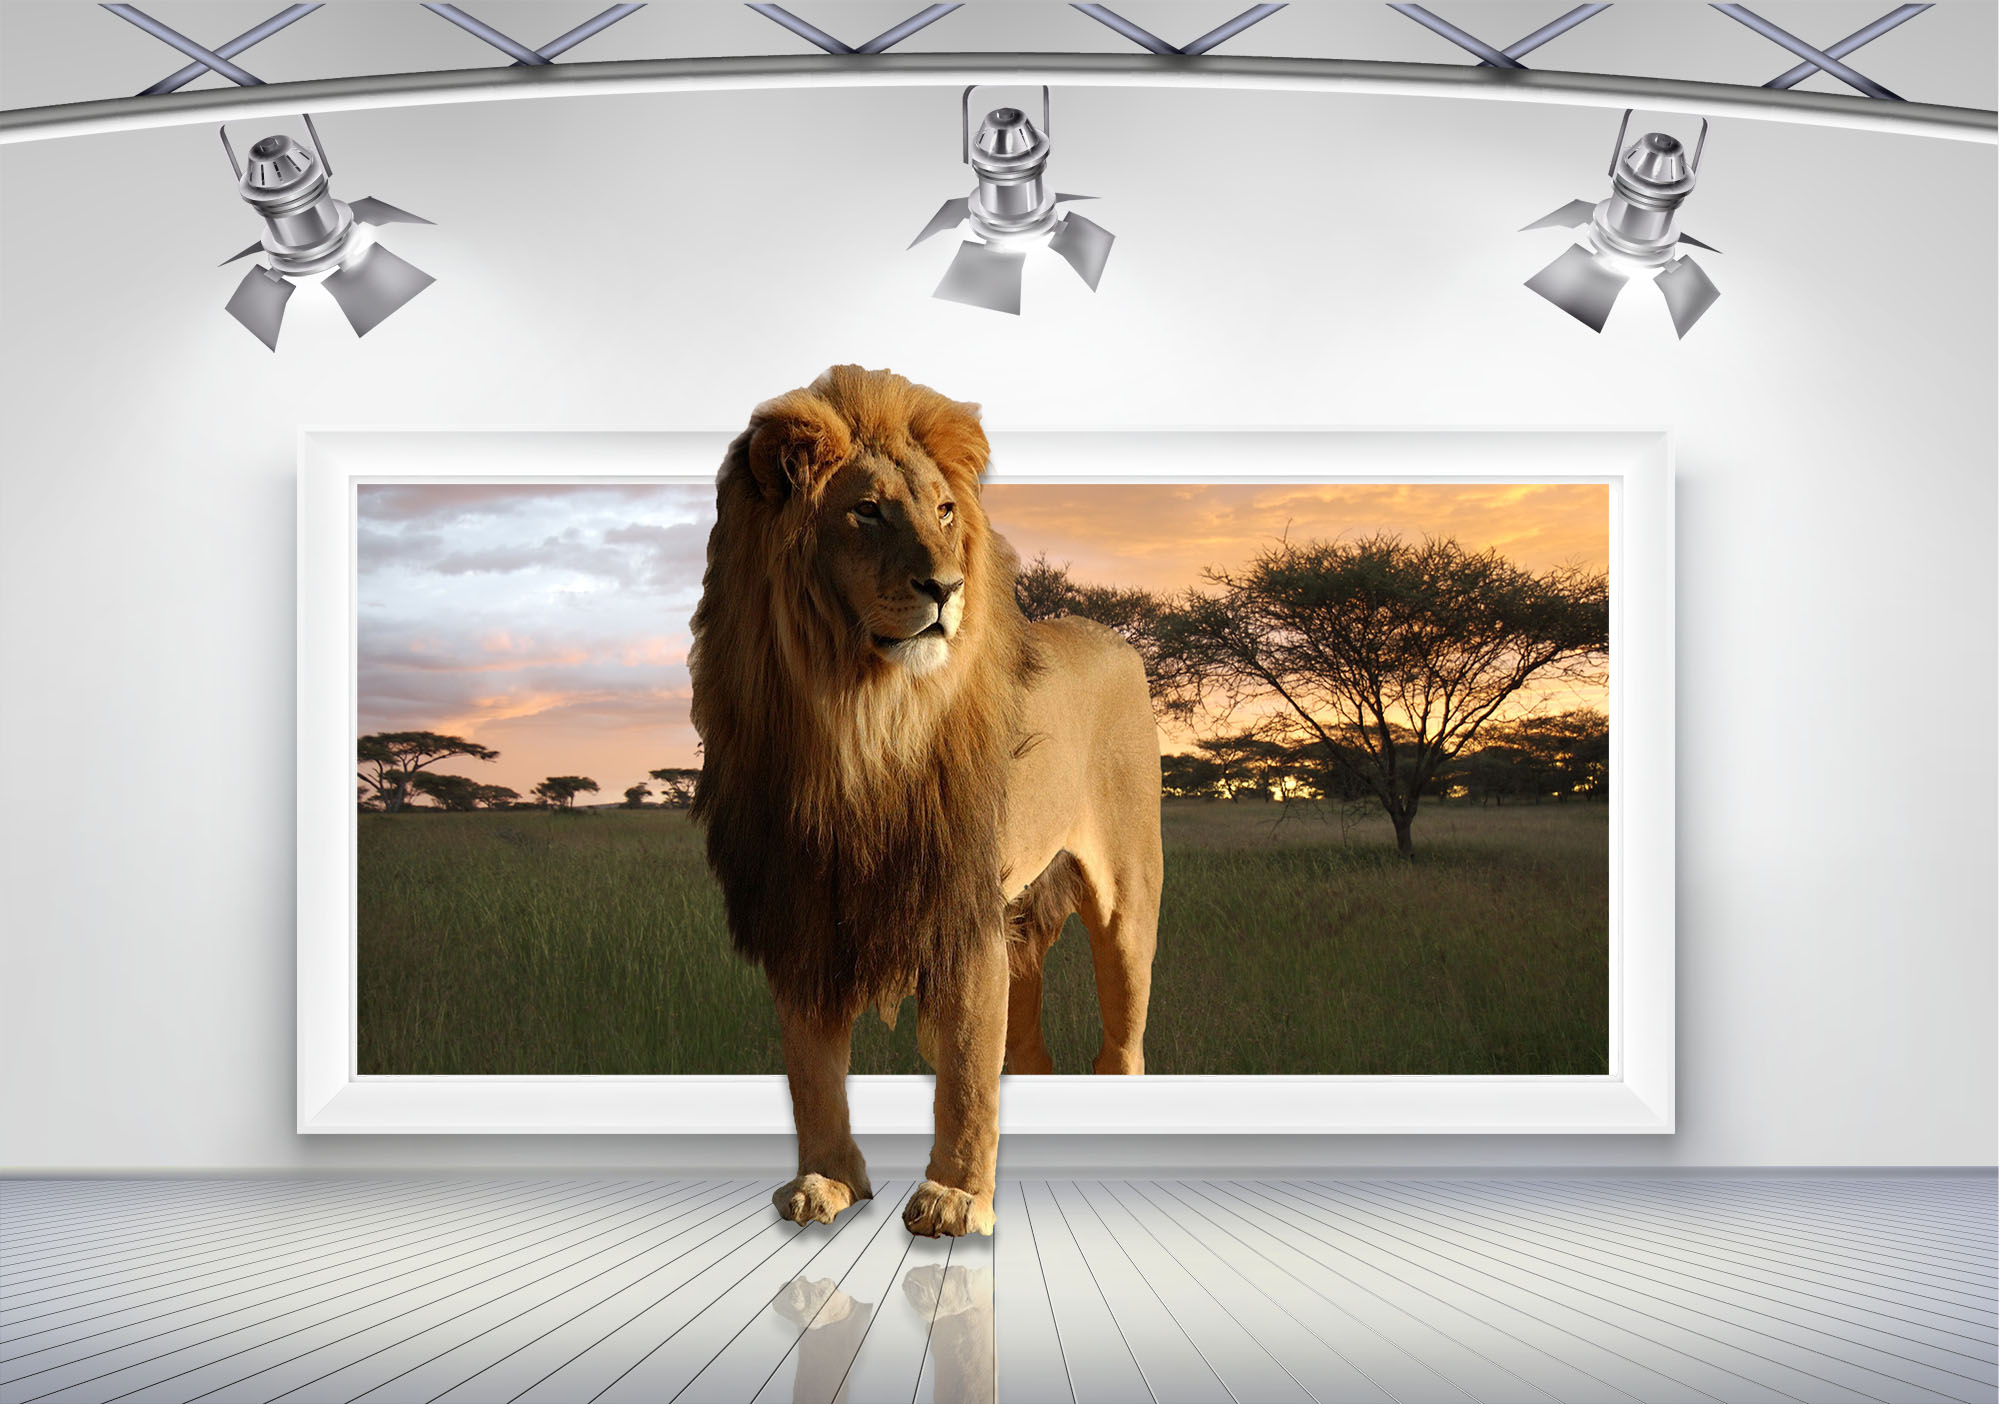 Lion Out of bounds 3 Frame Room PSD by wsaconato on DeviantArt